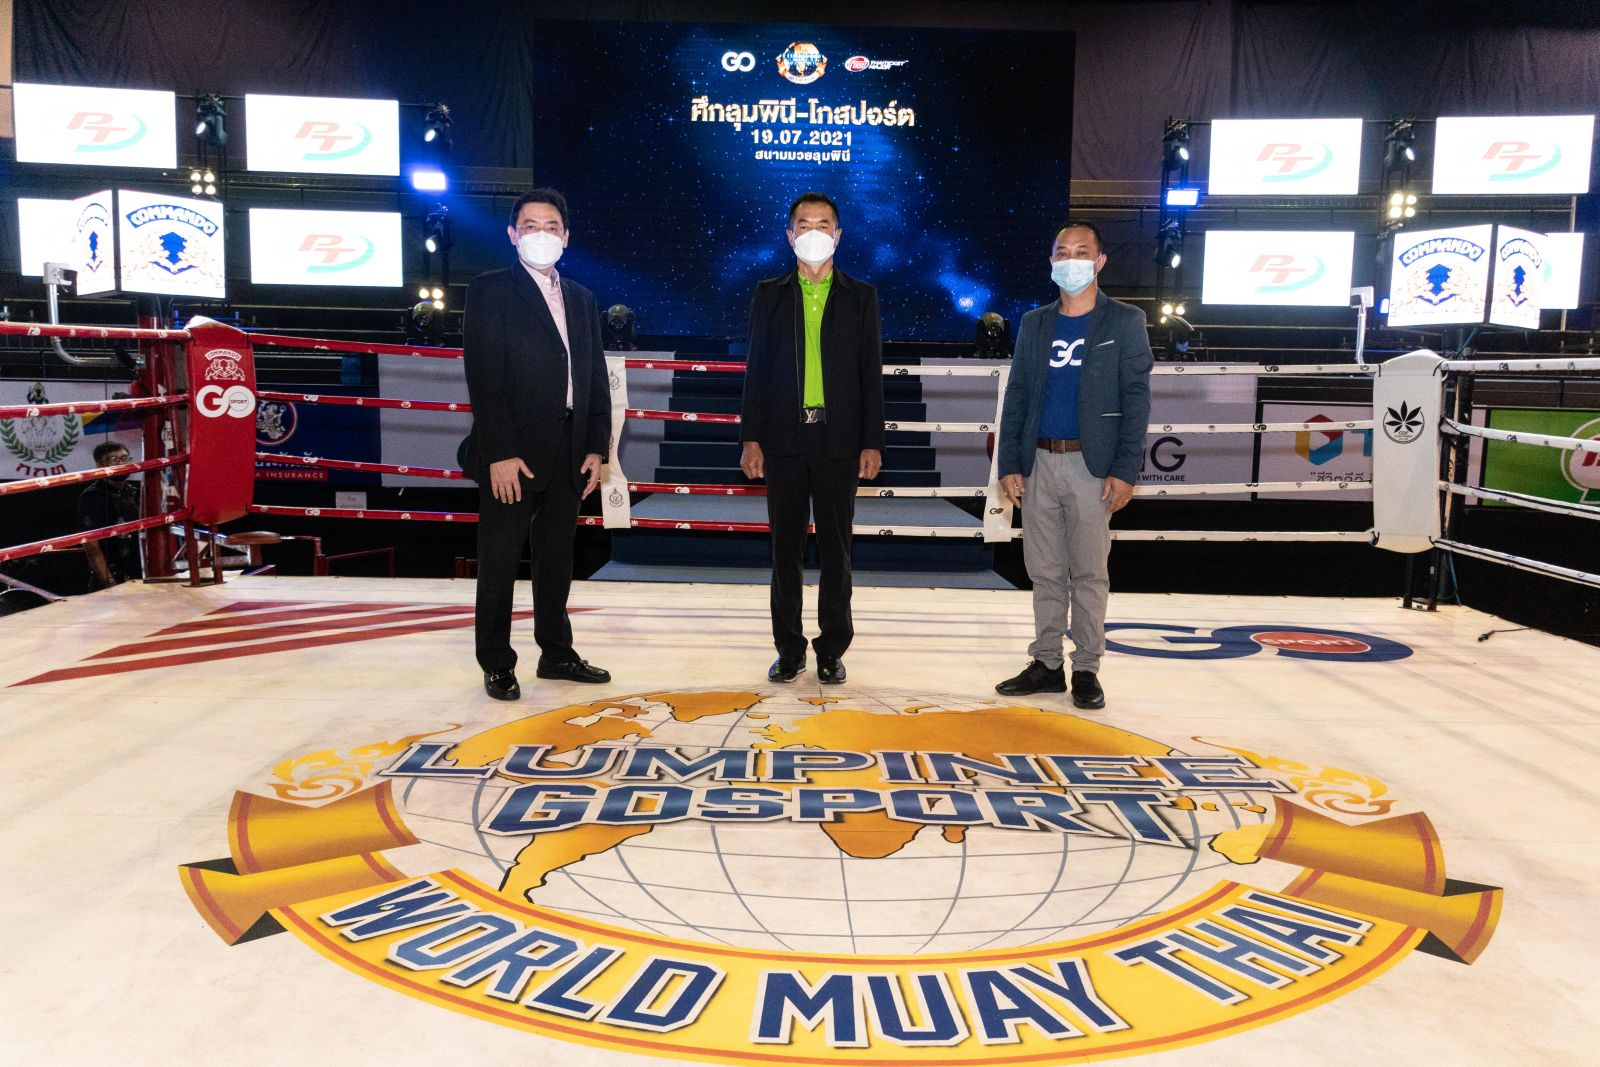 Thai Ticket Major joins hands with Go Sport to push Muay Thai to the world